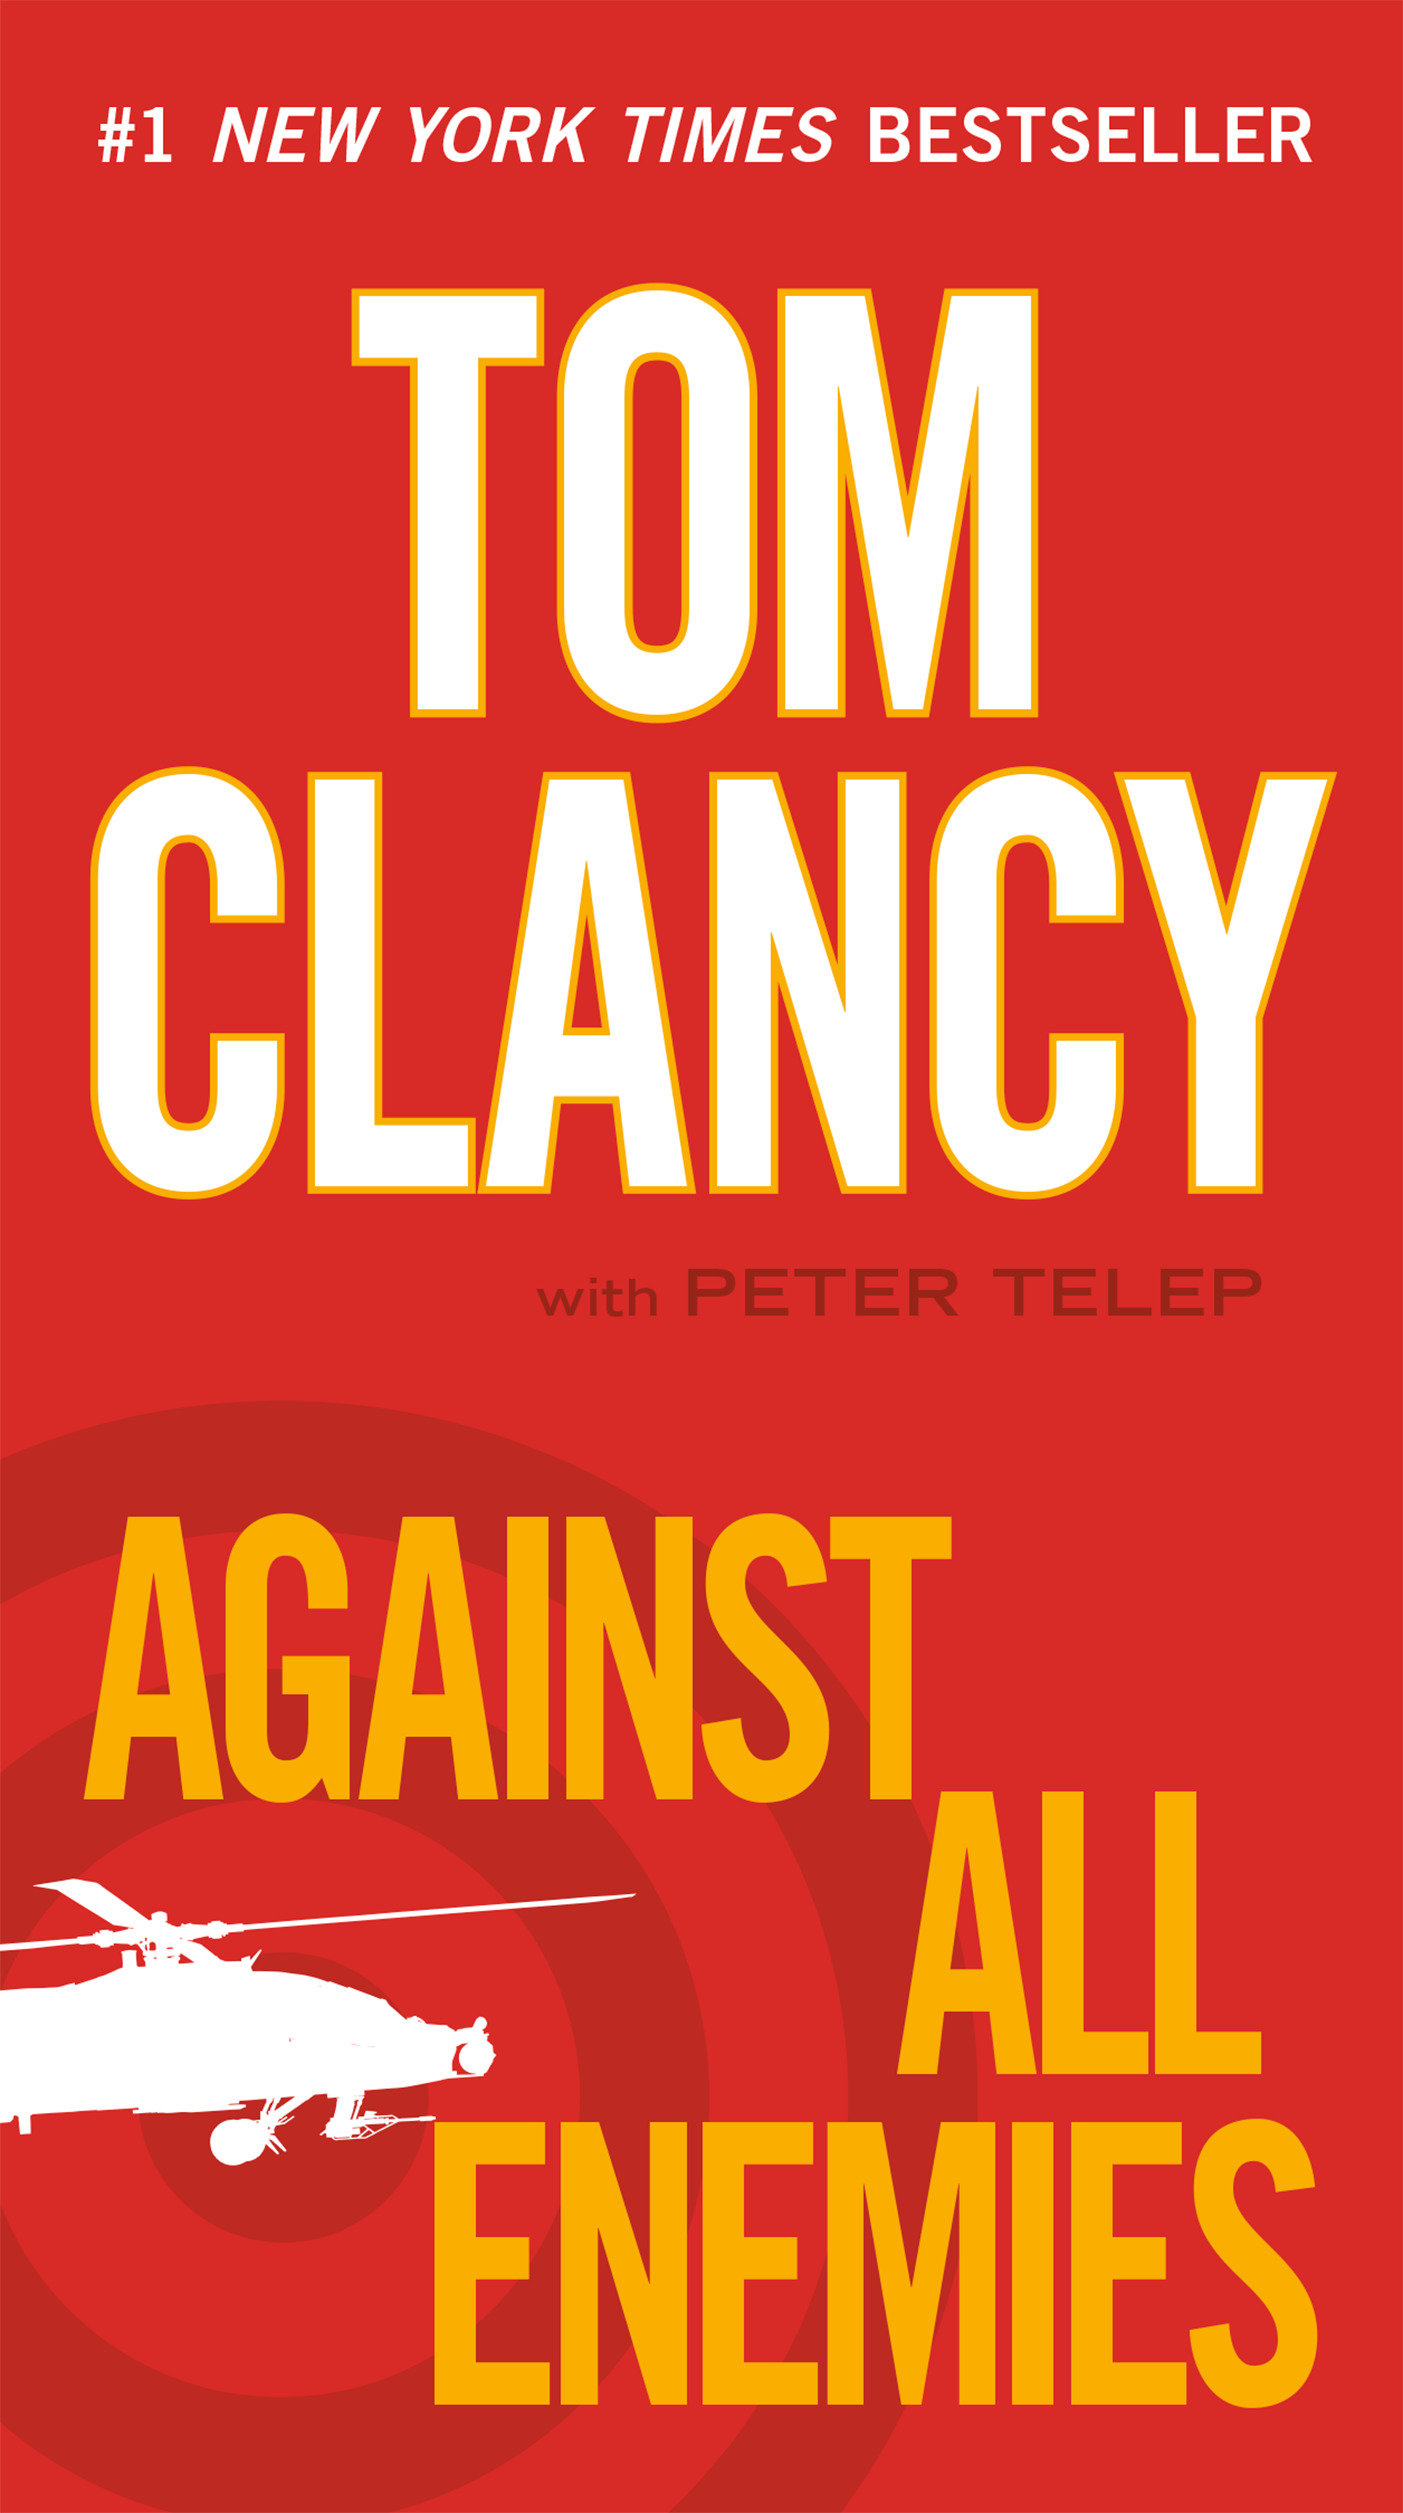 Against all enemies cover image